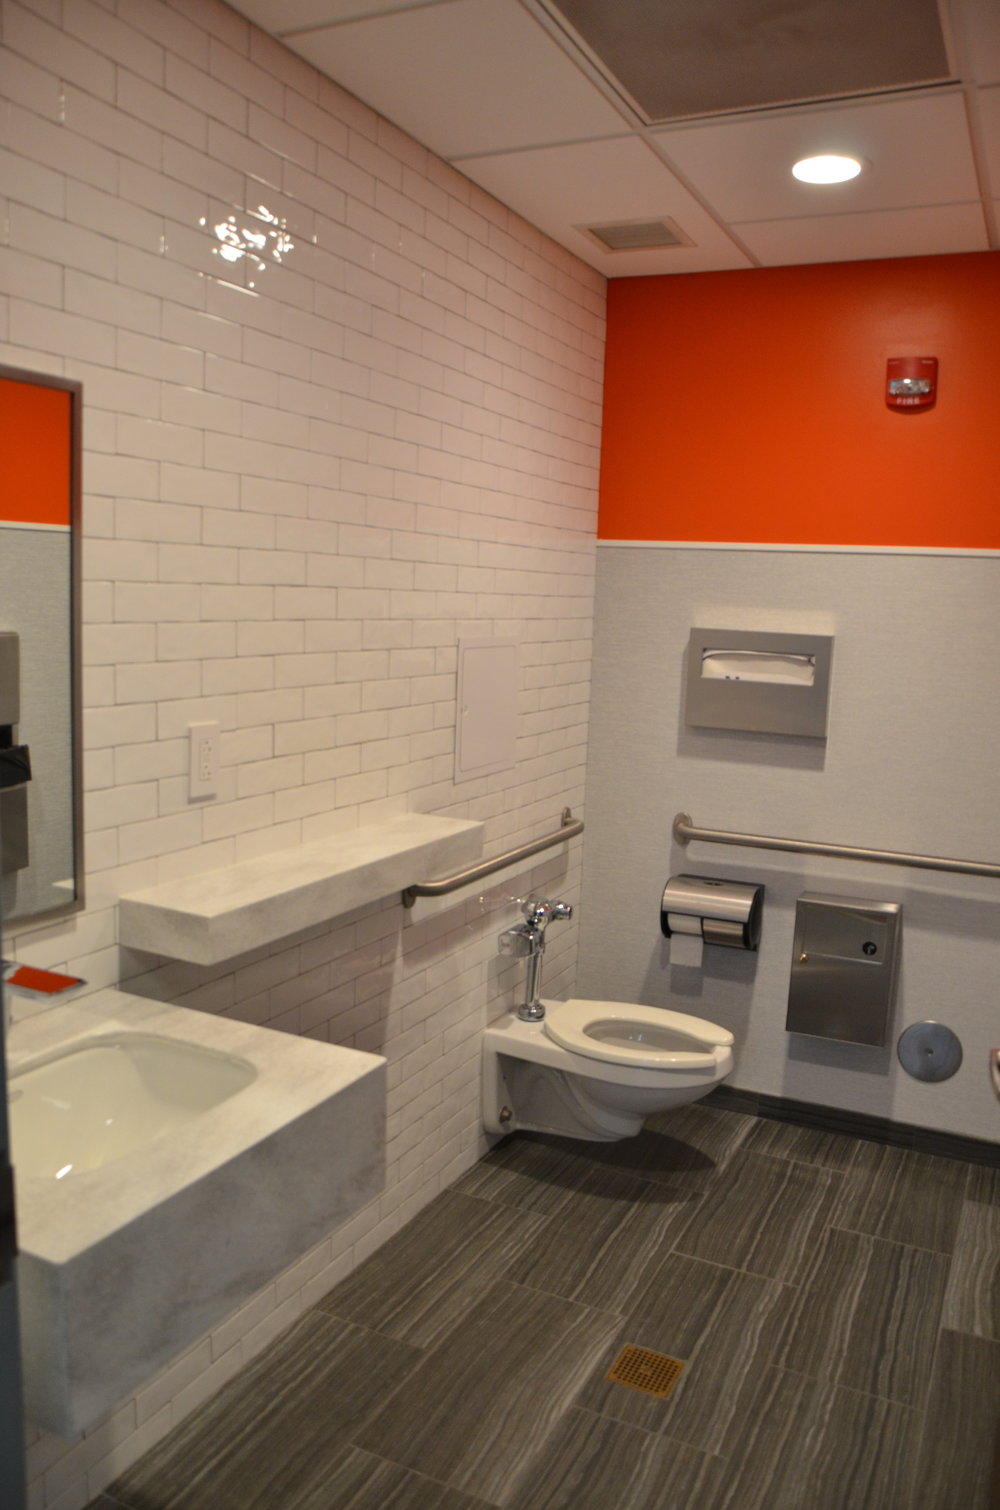 Corporate Bathroom Interior Design and Facility Design